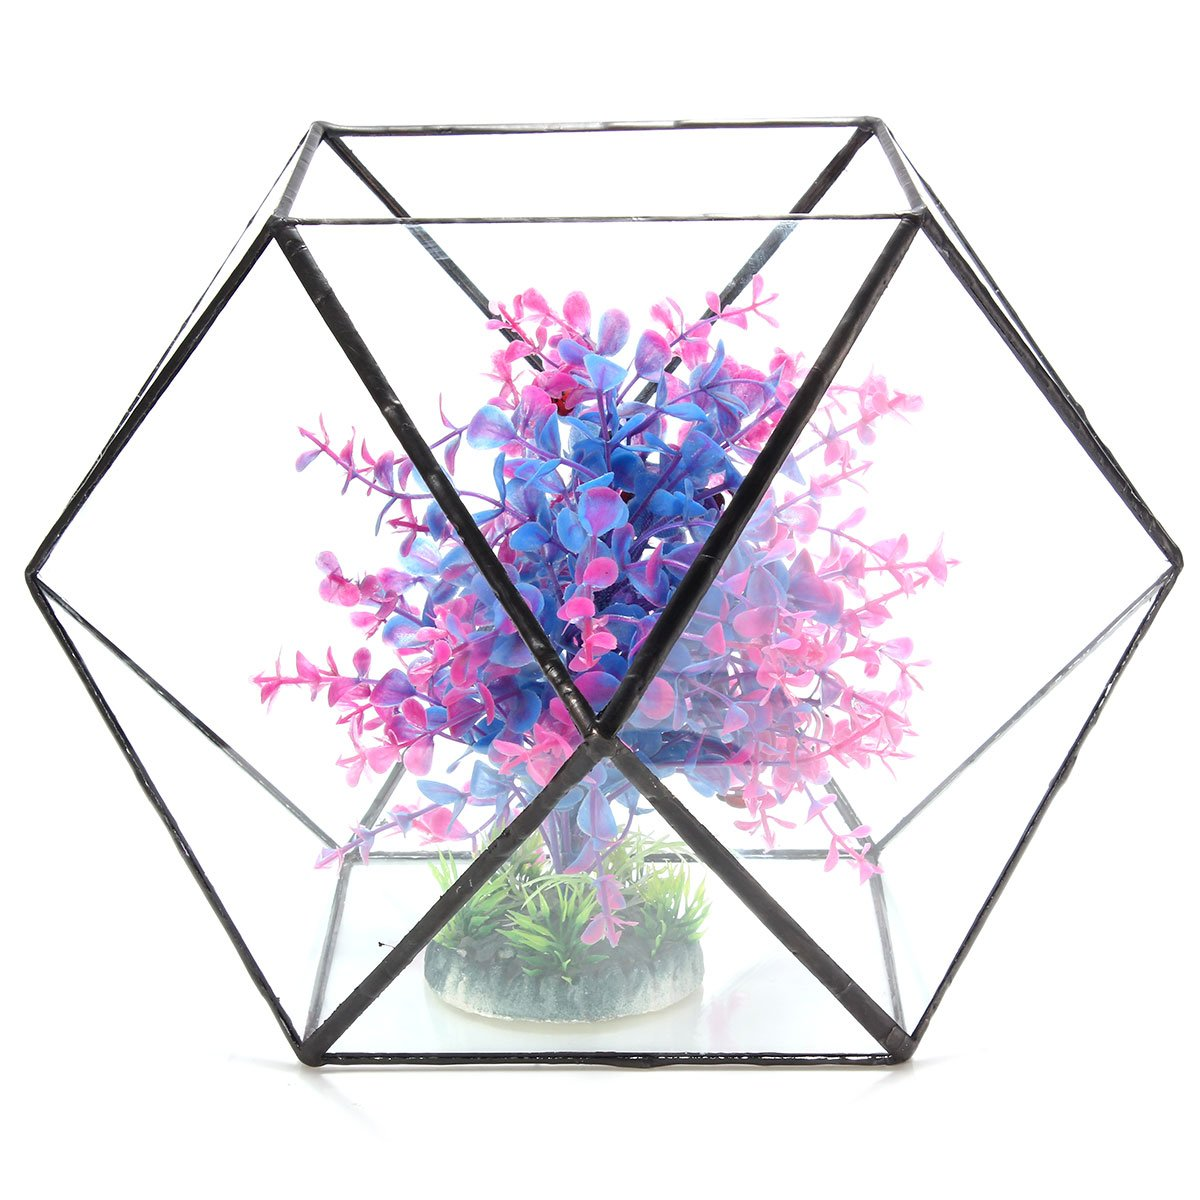 BuyYourWish Polygon Greenhouse Glass Terrarium DIY Micro Landscape Succulent Plants Flower Pot One Piece by BuyYourWish